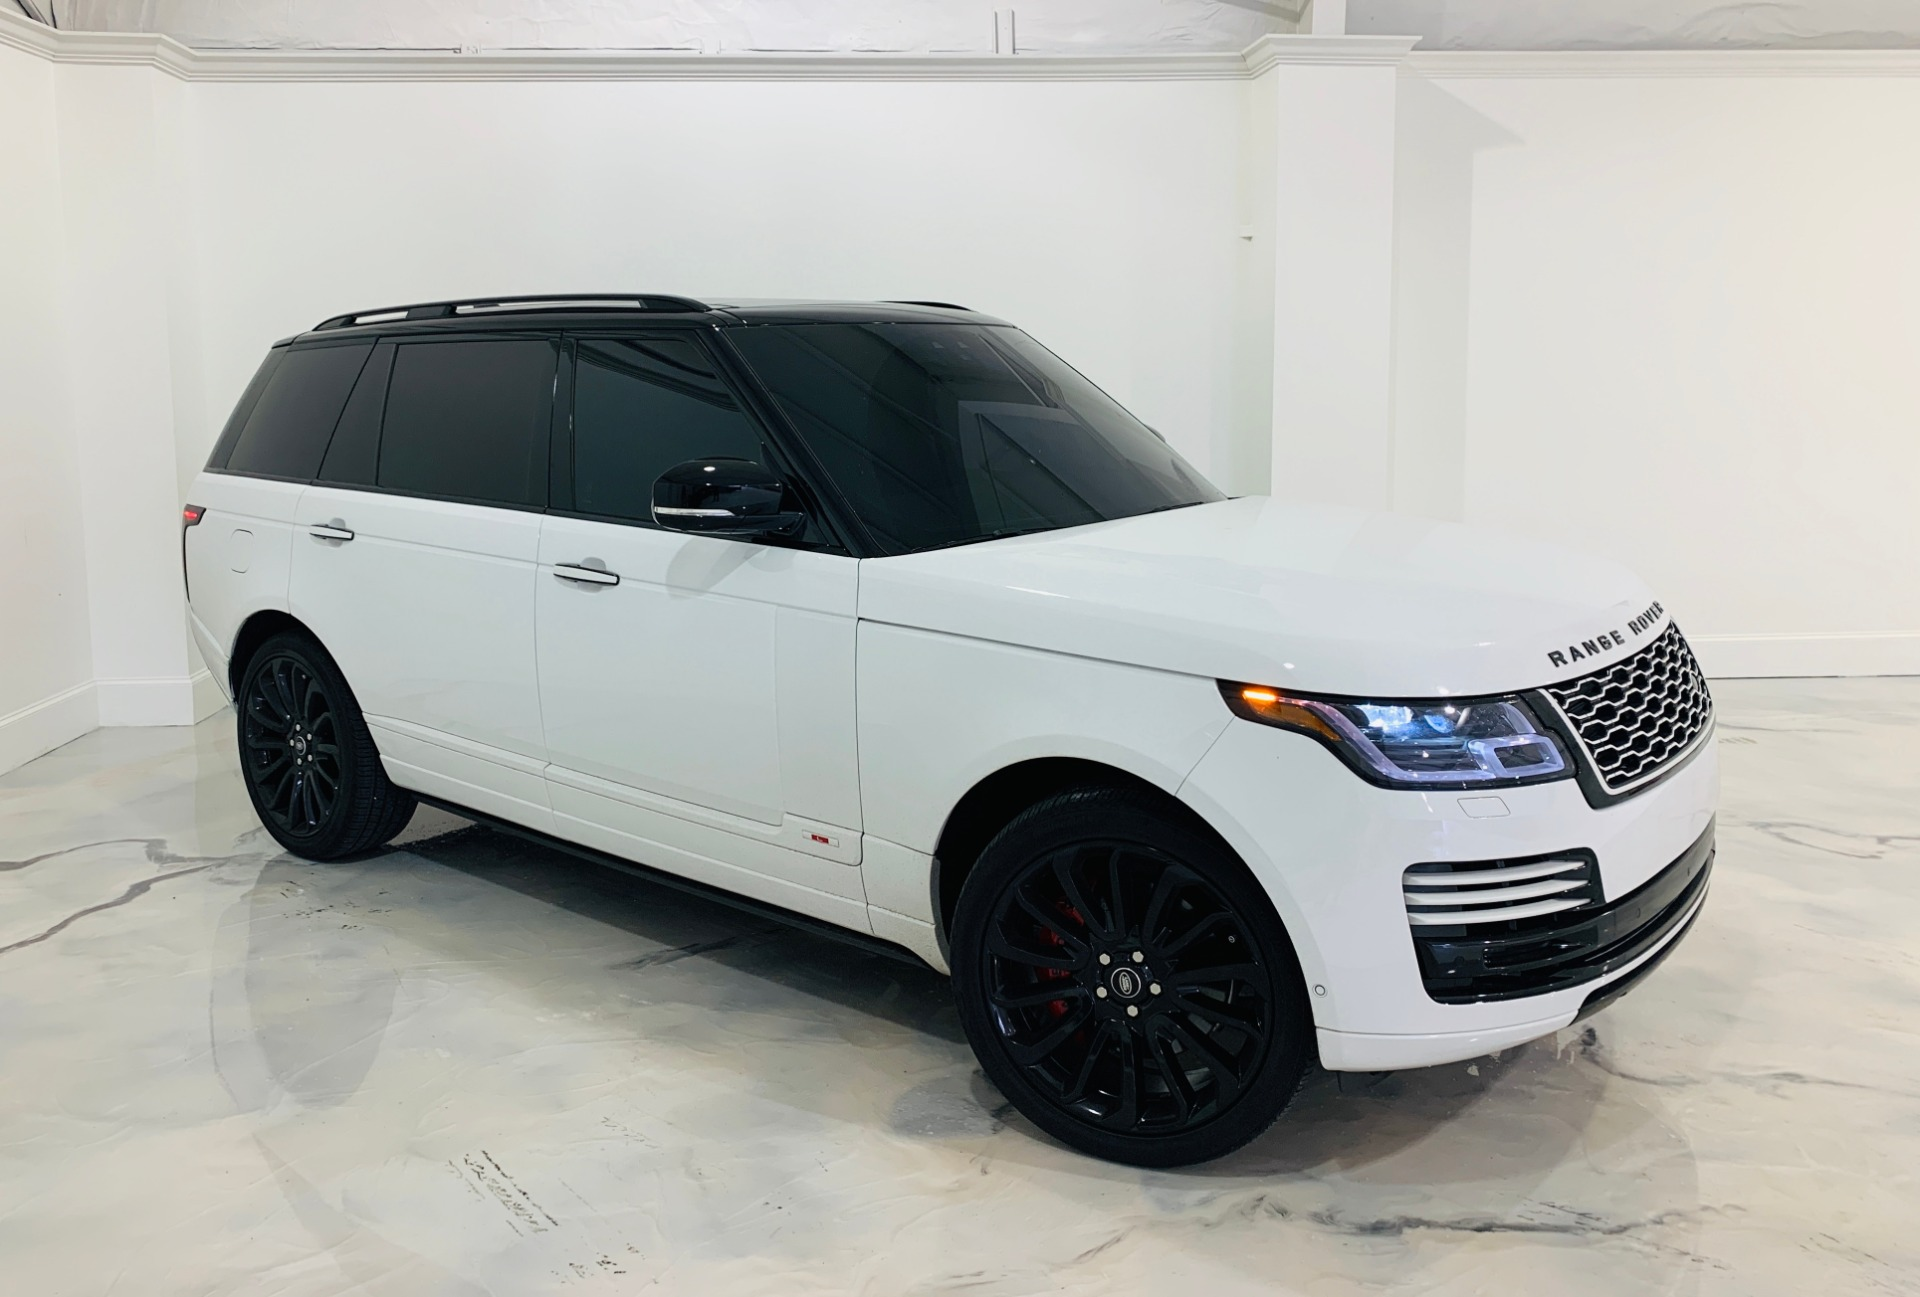 2018 Range Rover Autobiography Lwb Rs Stock Ja500999 For